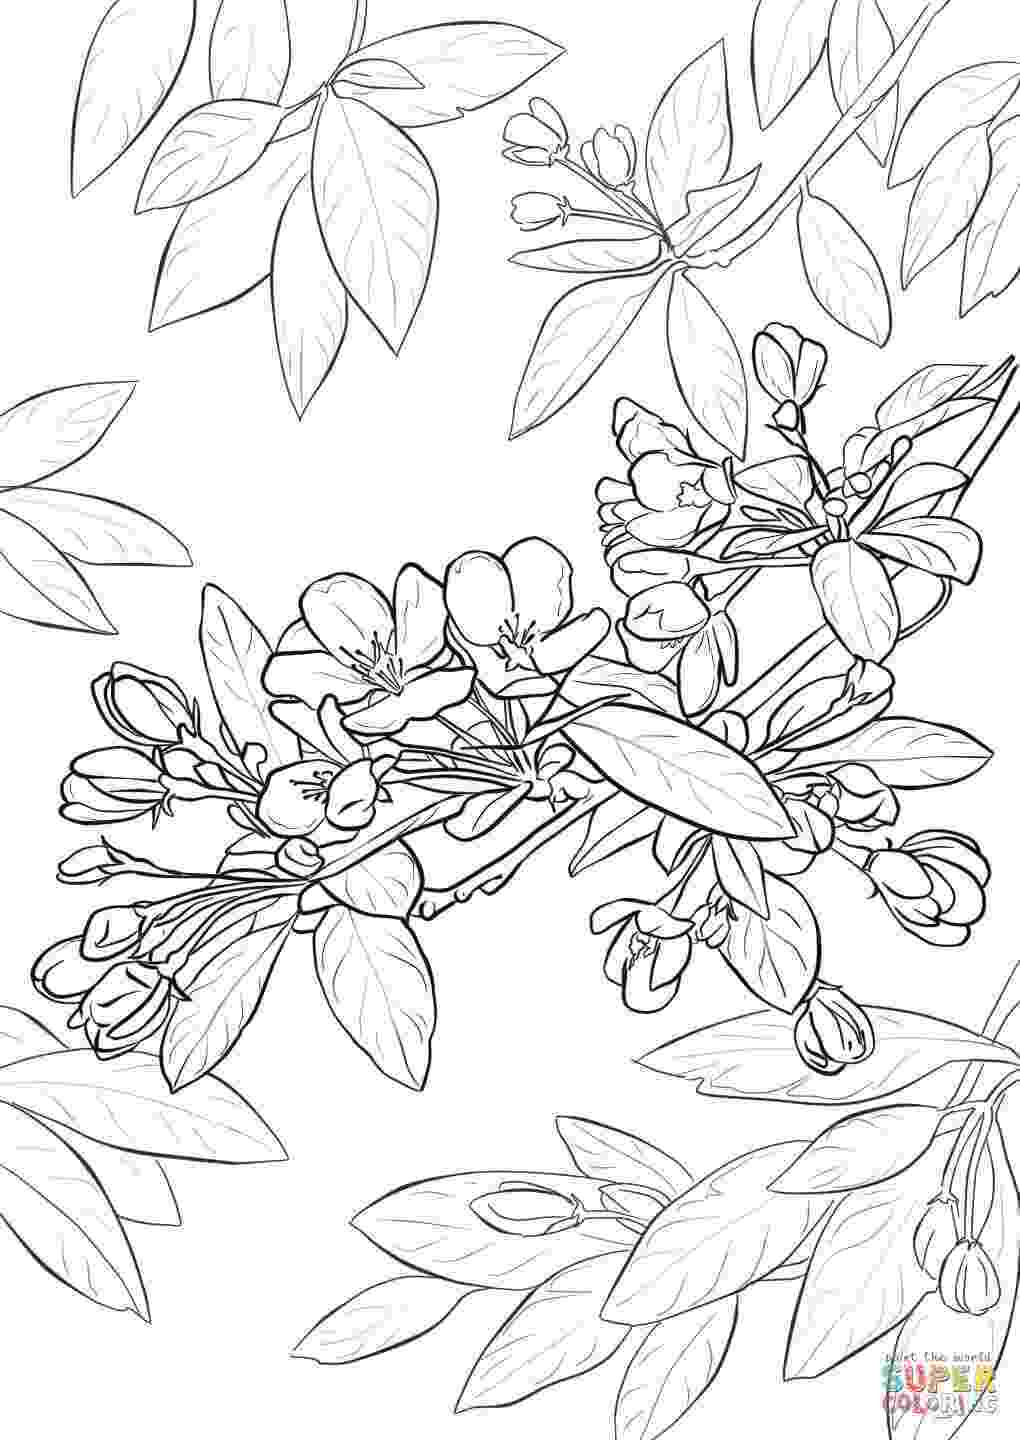 cherry blossom coloring pages cherry blossom tree drawing step by step at getdrawings blossom coloring cherry pages